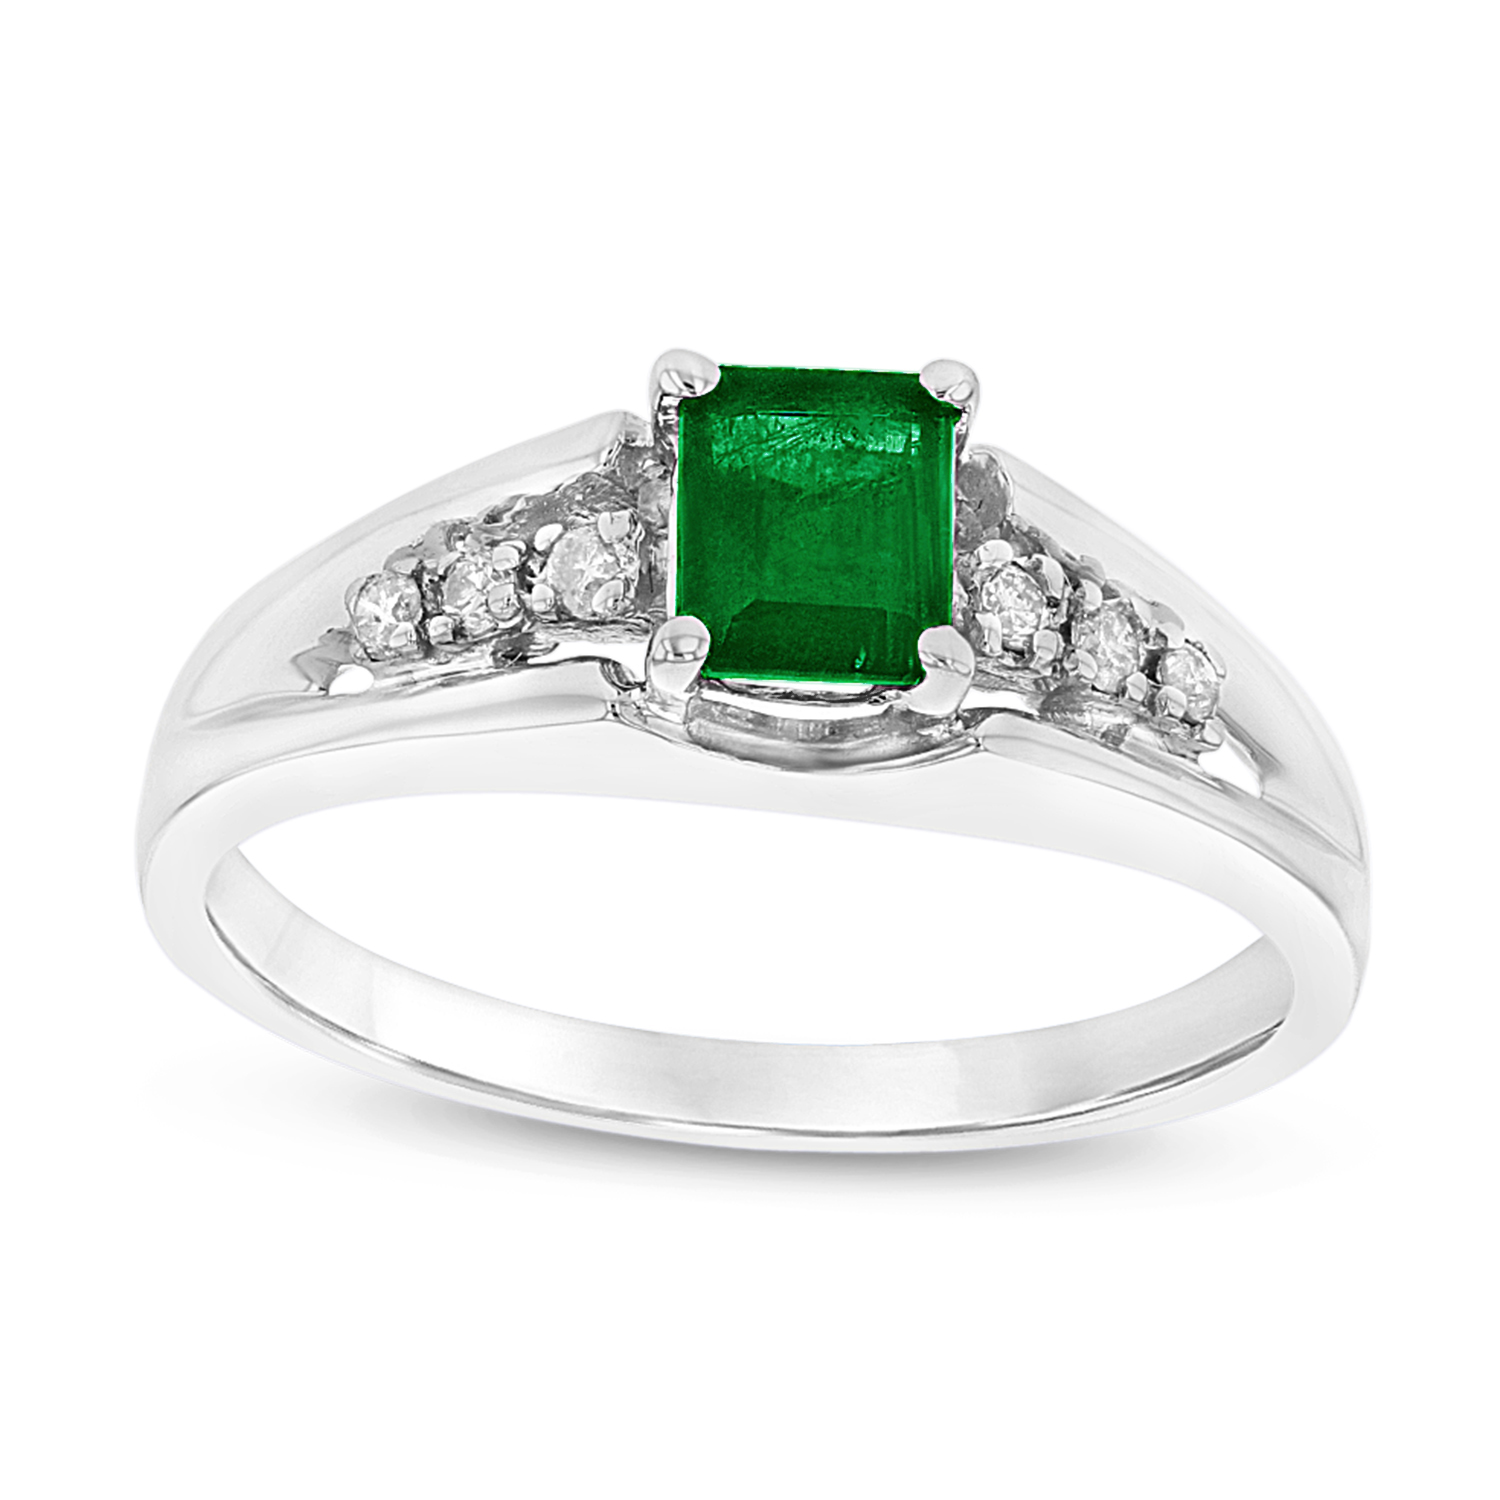 View 0.58cttw Emerald and Diamond Ring set in 14k Gold